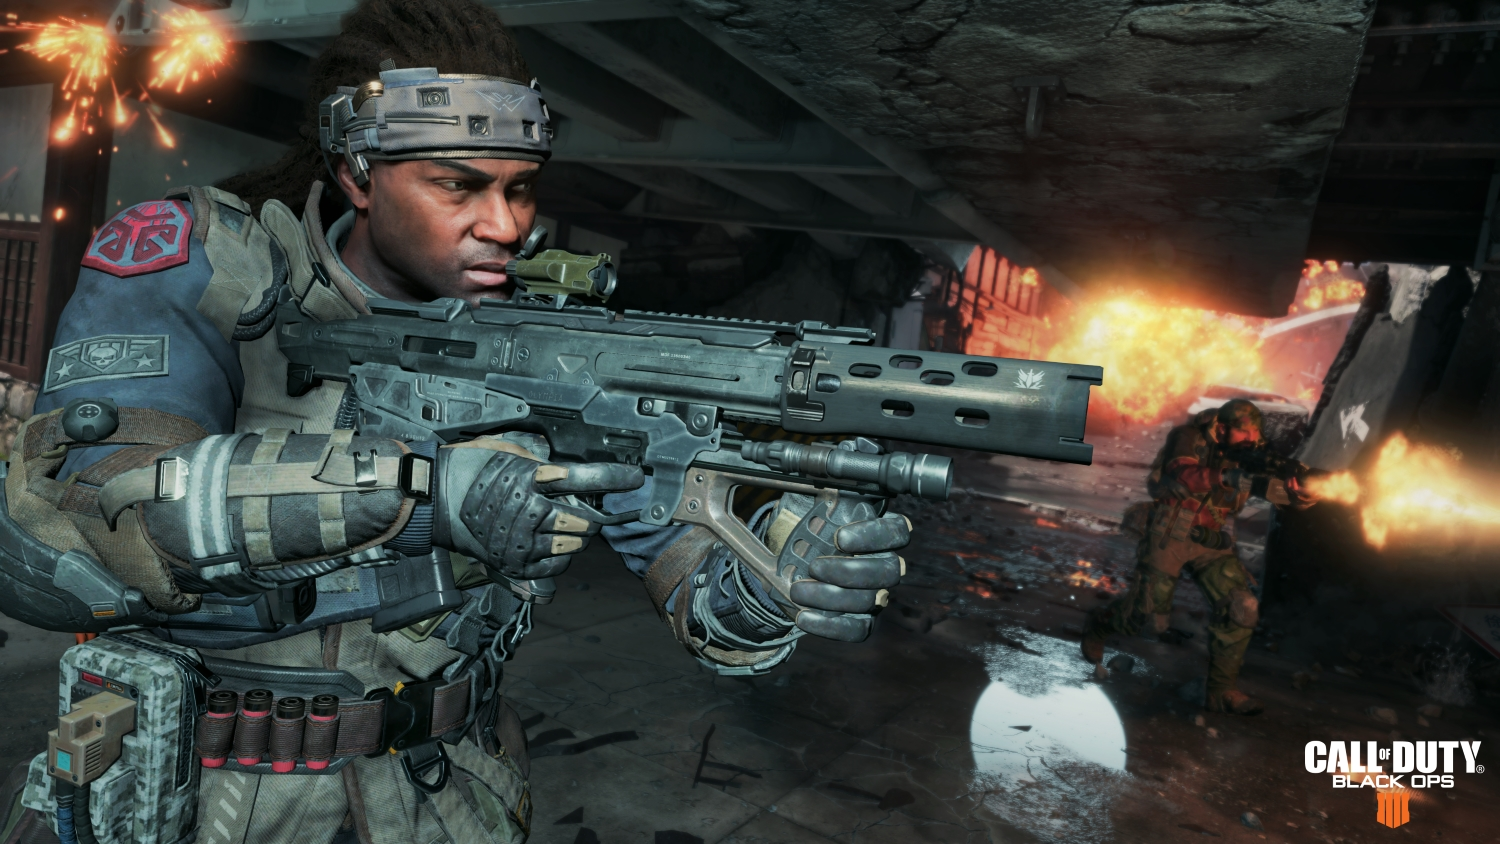 Call Of Duty: Black Ops 4 release date and how to pre-order the game